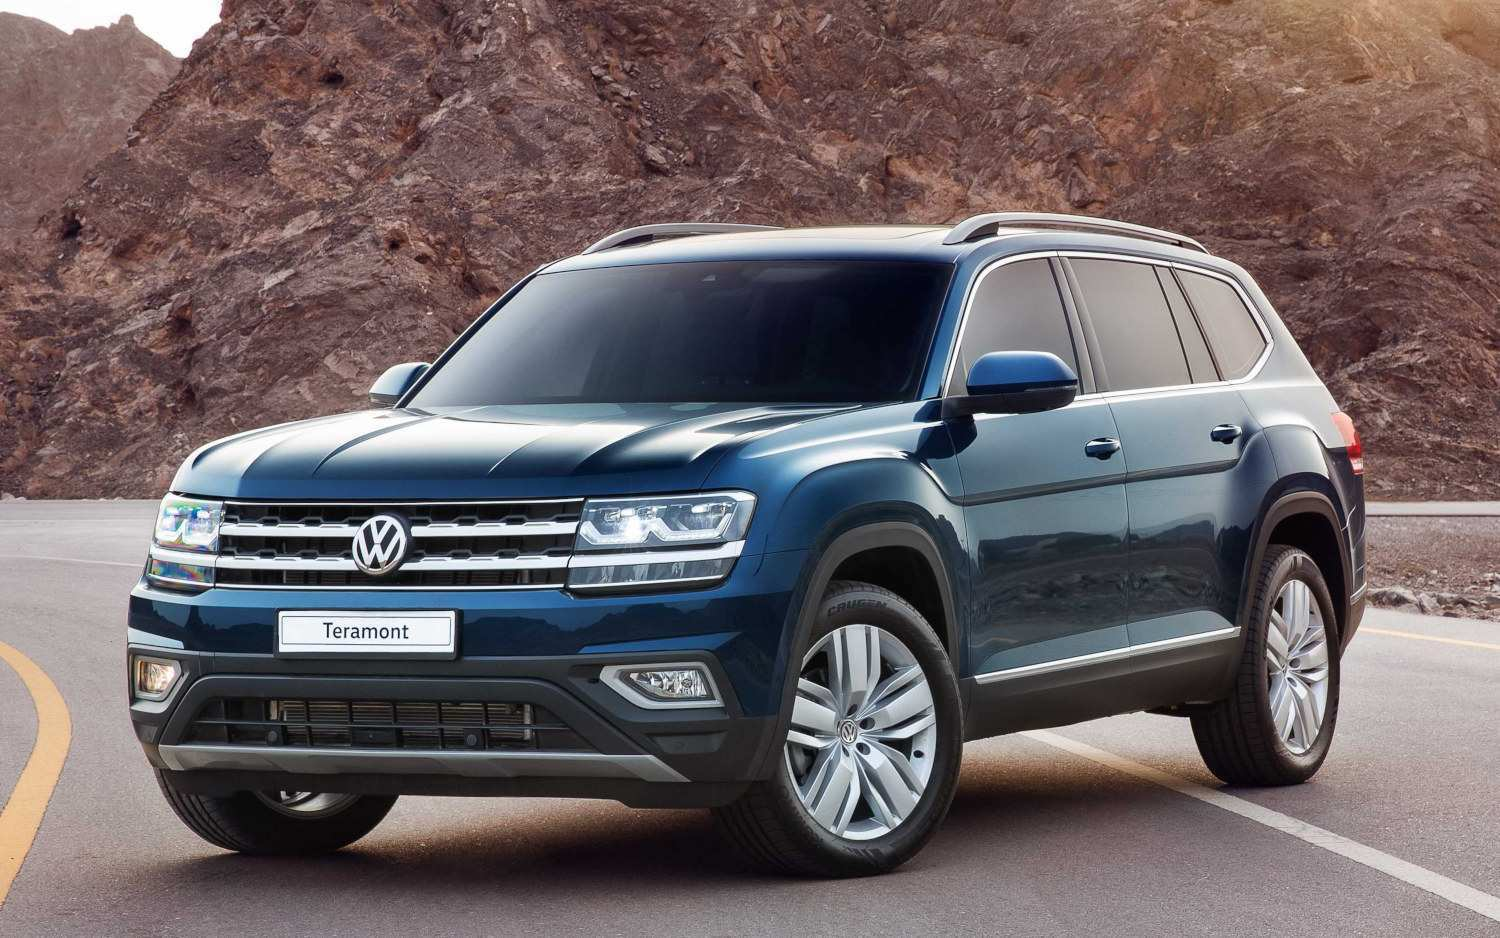 20 A 2020 Volkswagen Teramont X Price And Release Date